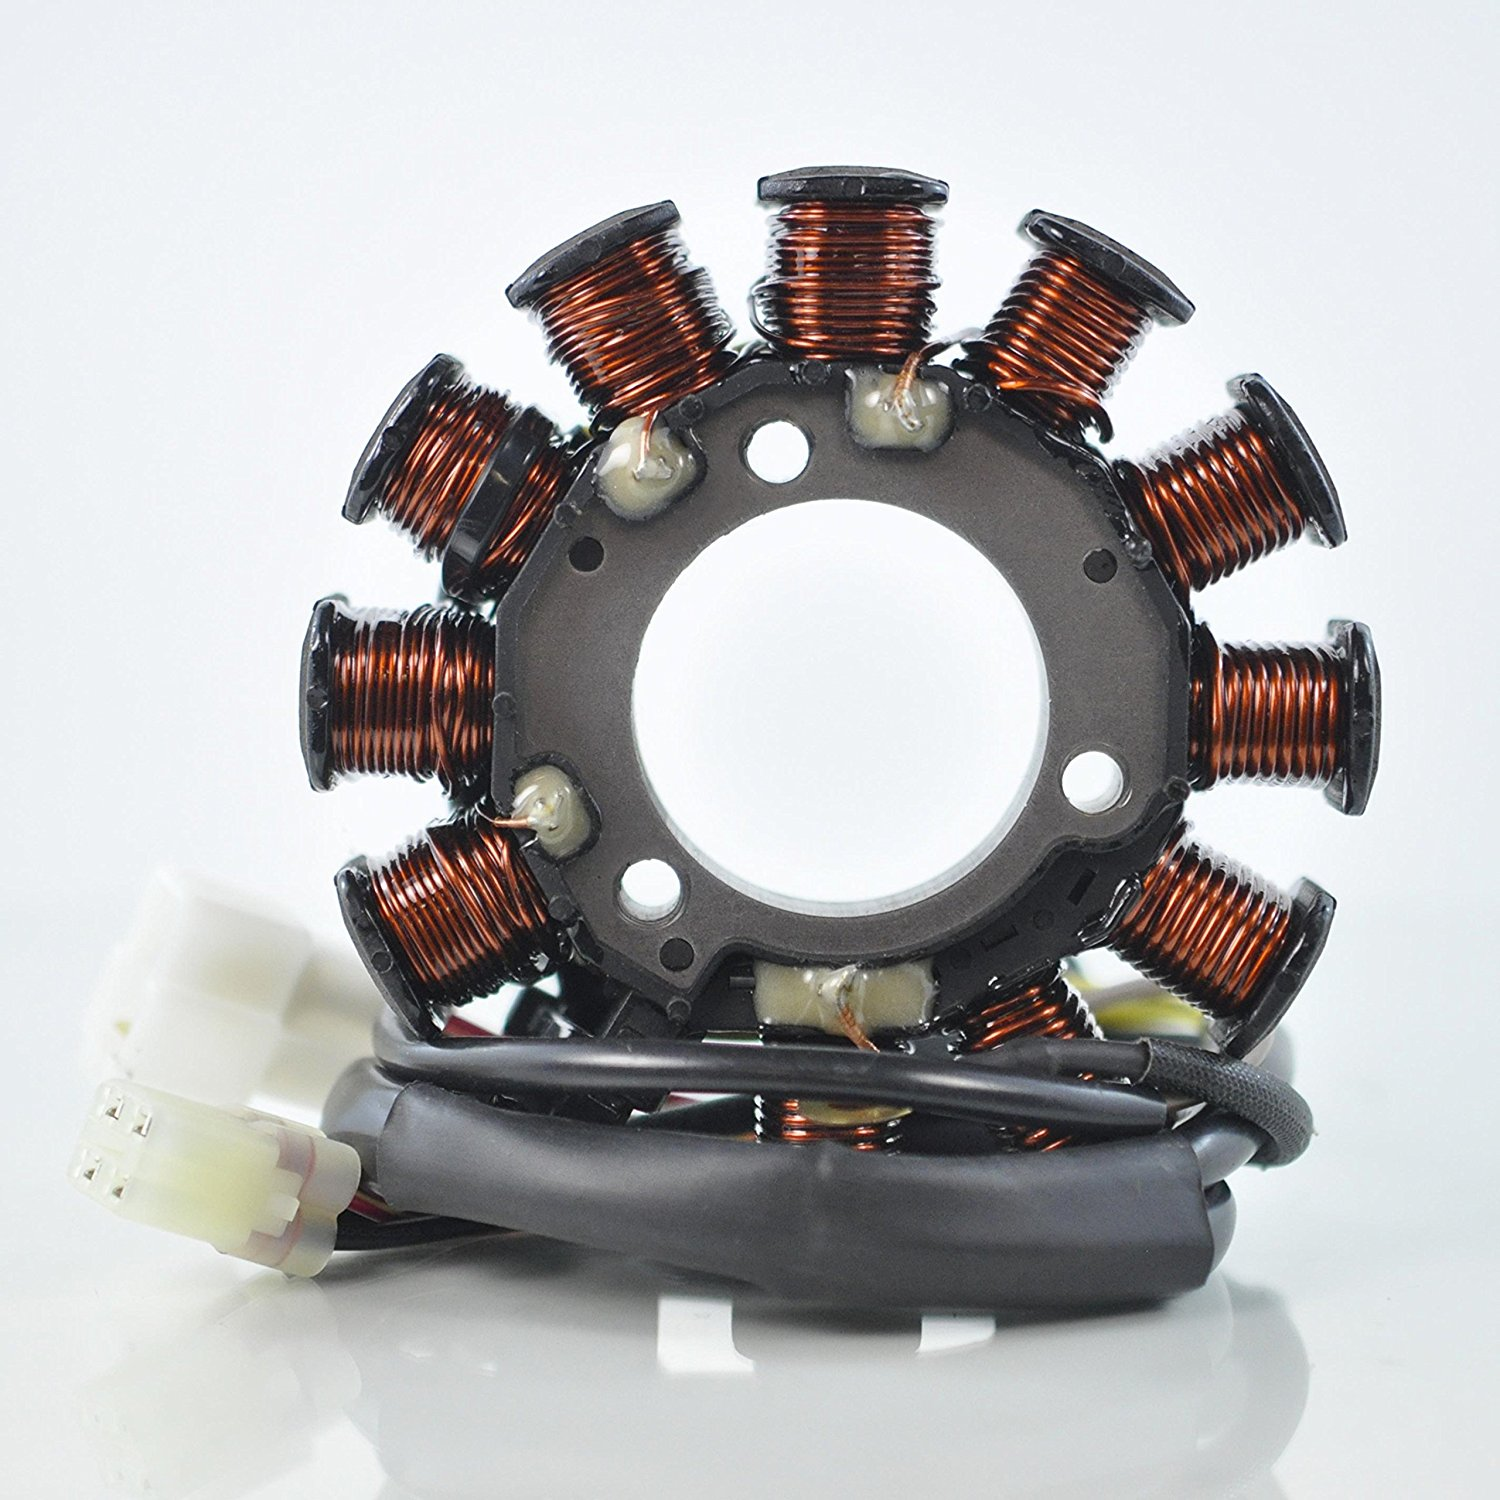 hight resolution of get quotations generator stator for arctic cat 440 sno pro f5 firecat 500 zr 440 sno pro carb